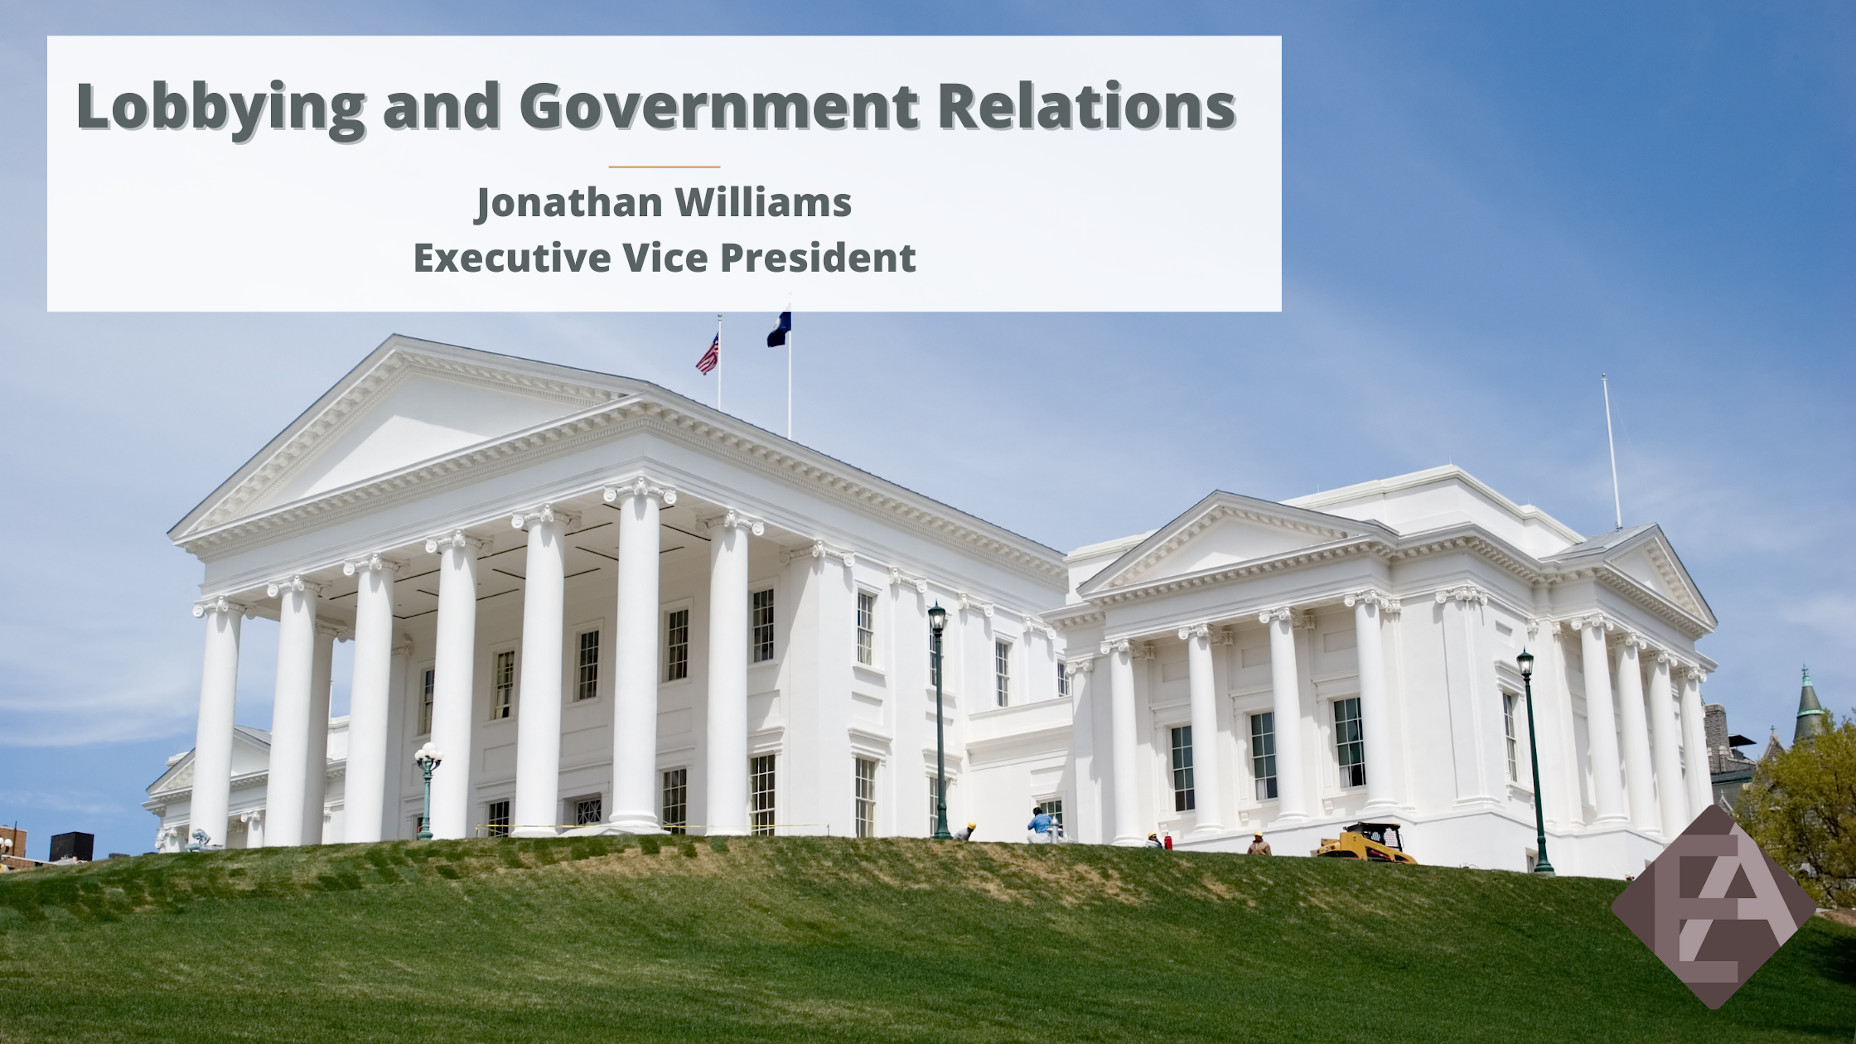 Lobbying and Government Relations